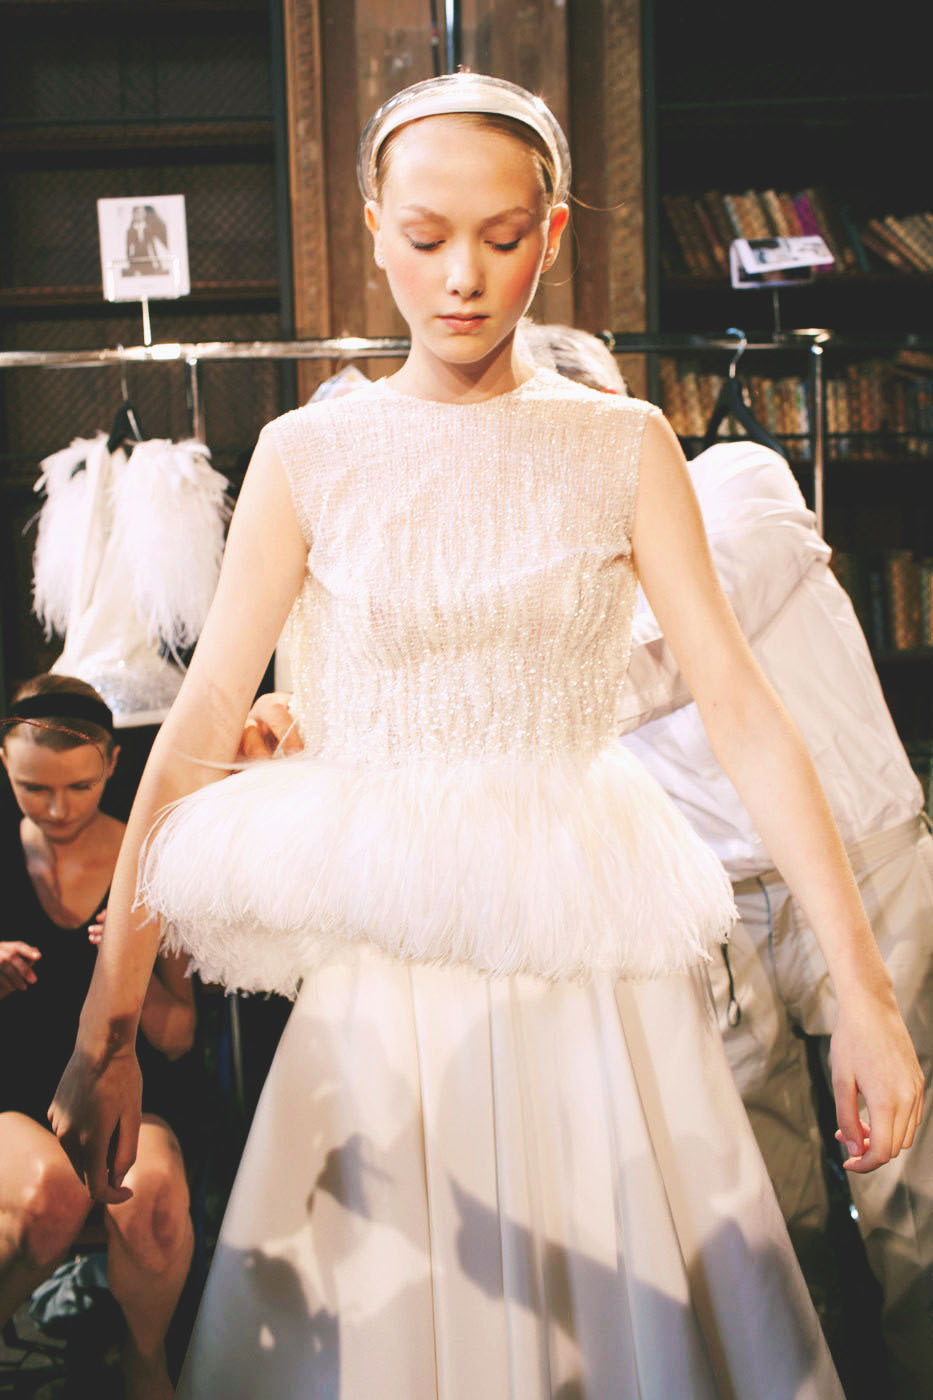 backstage at christopher josse haute couture, fall 2012